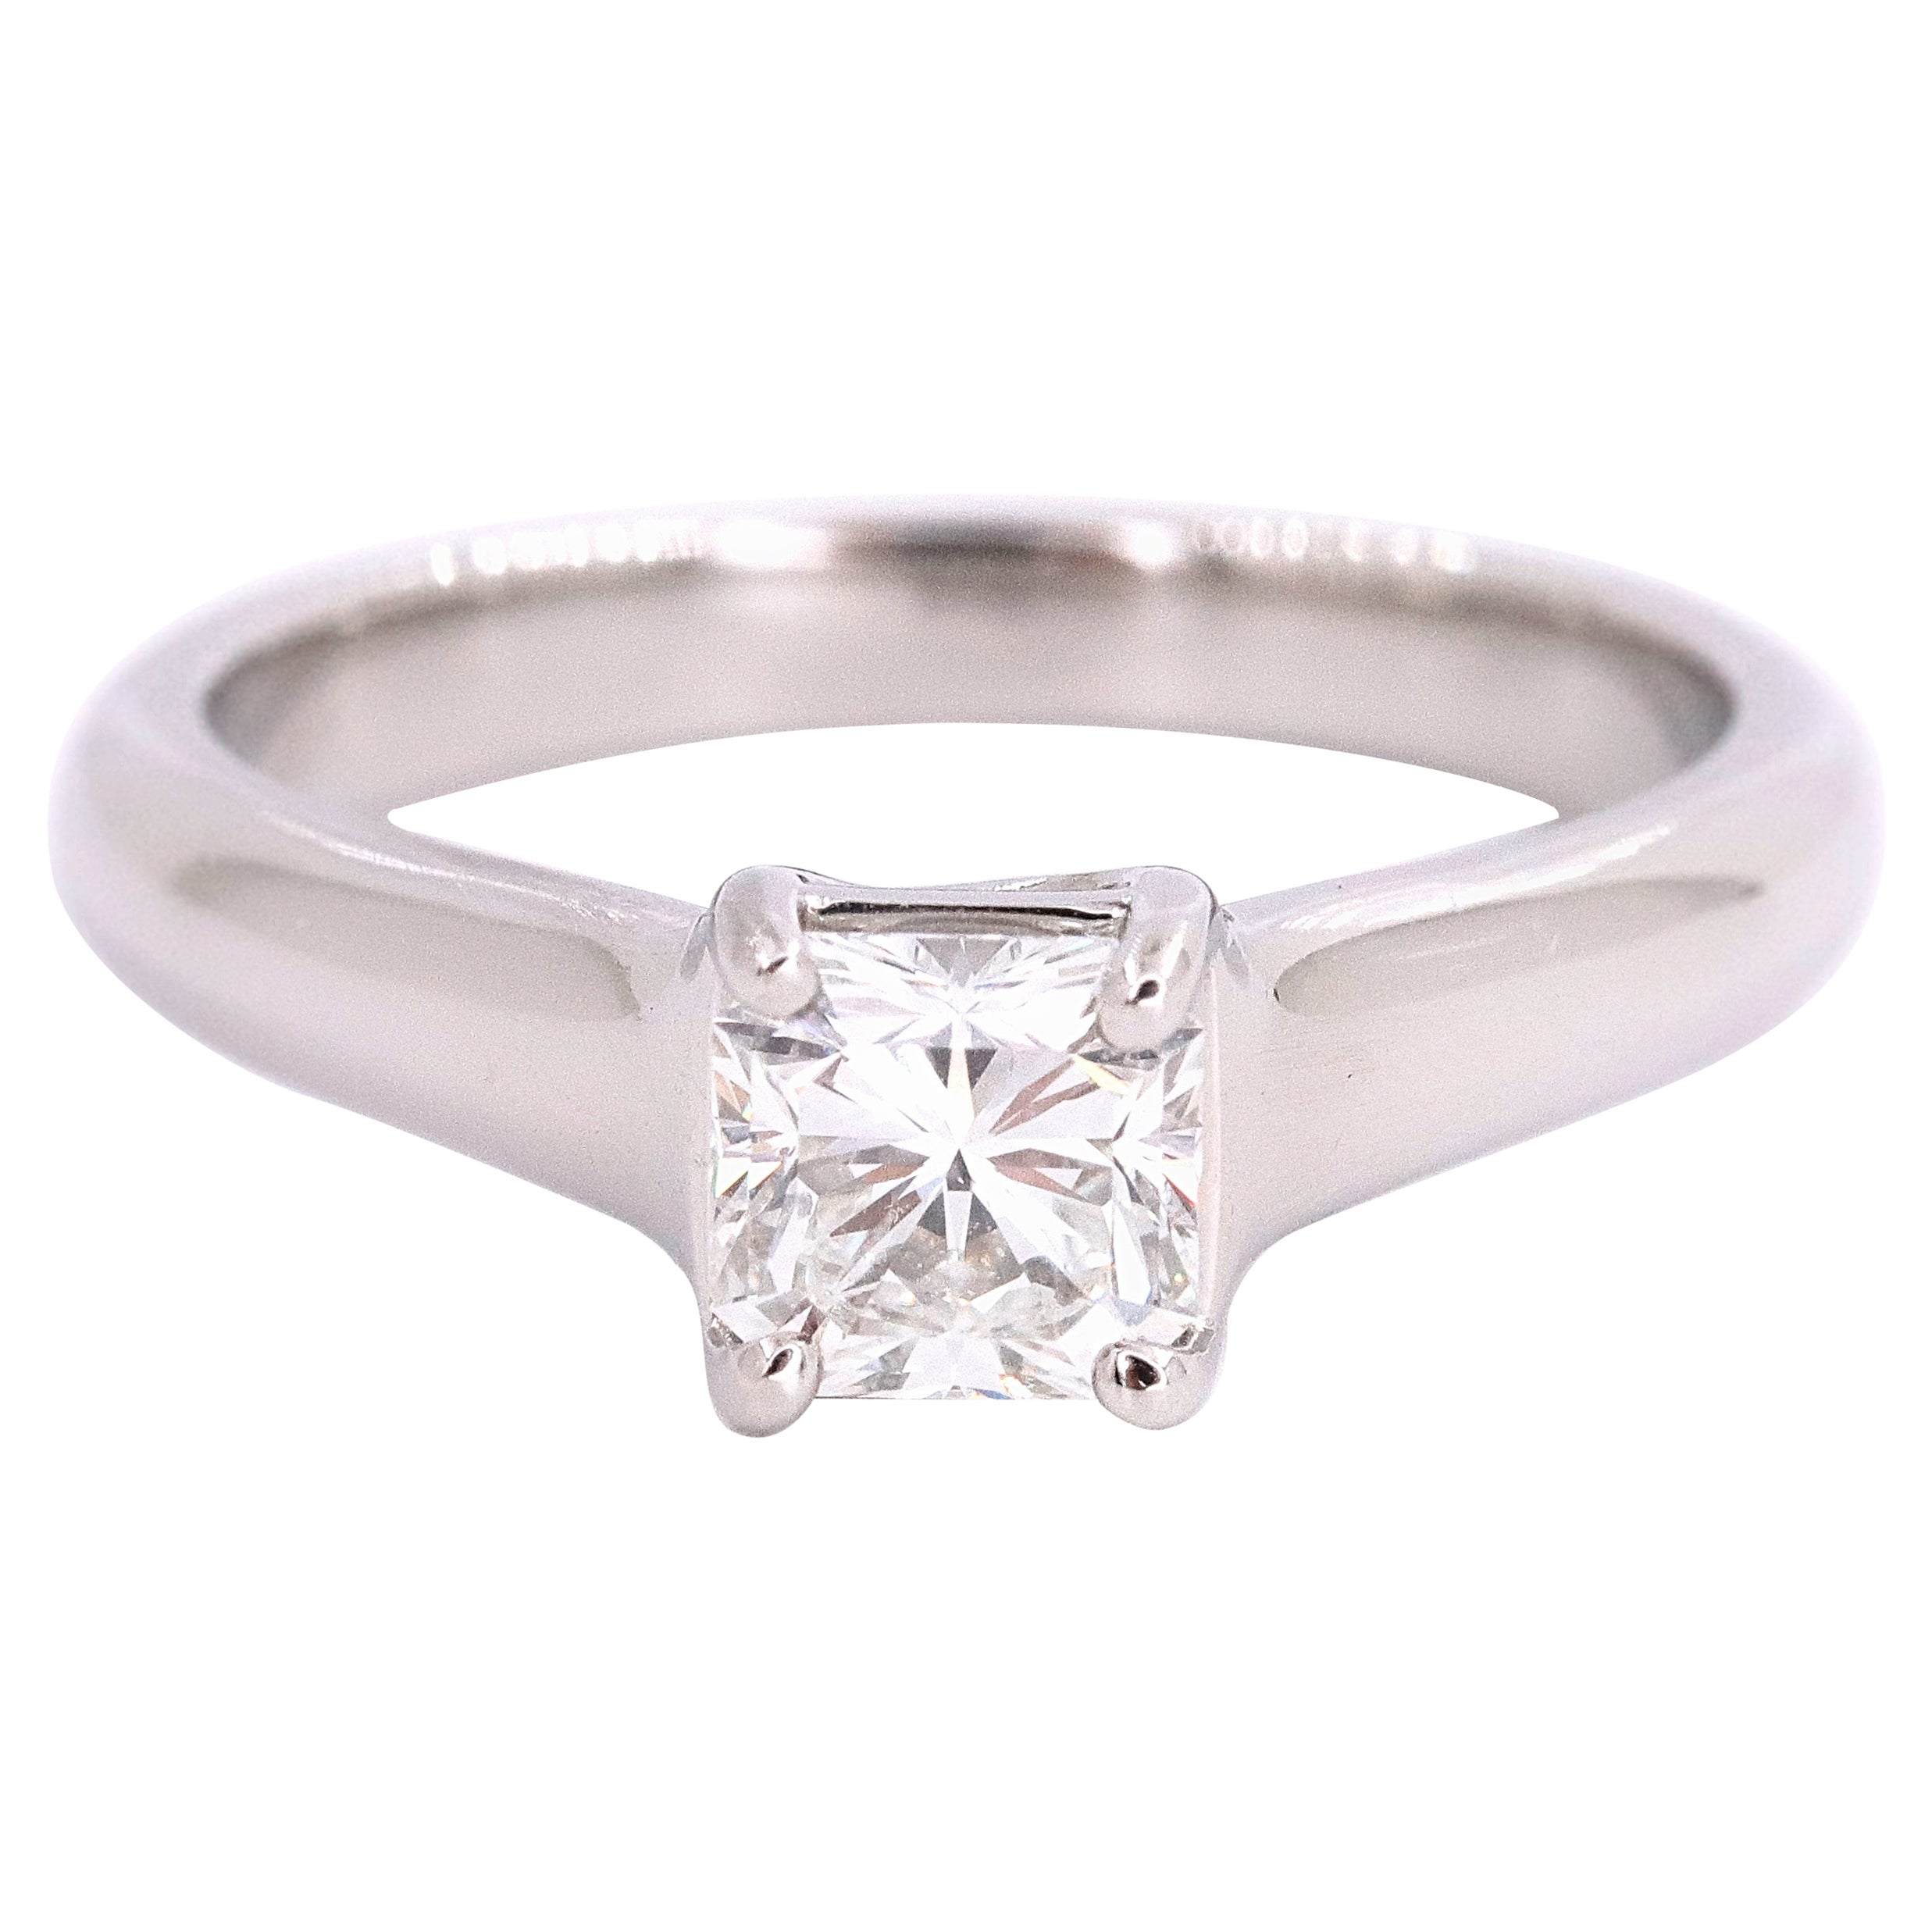 Tiffany & Co. Lucida Diamond 0.56 Carat Engagement Ring Platinum